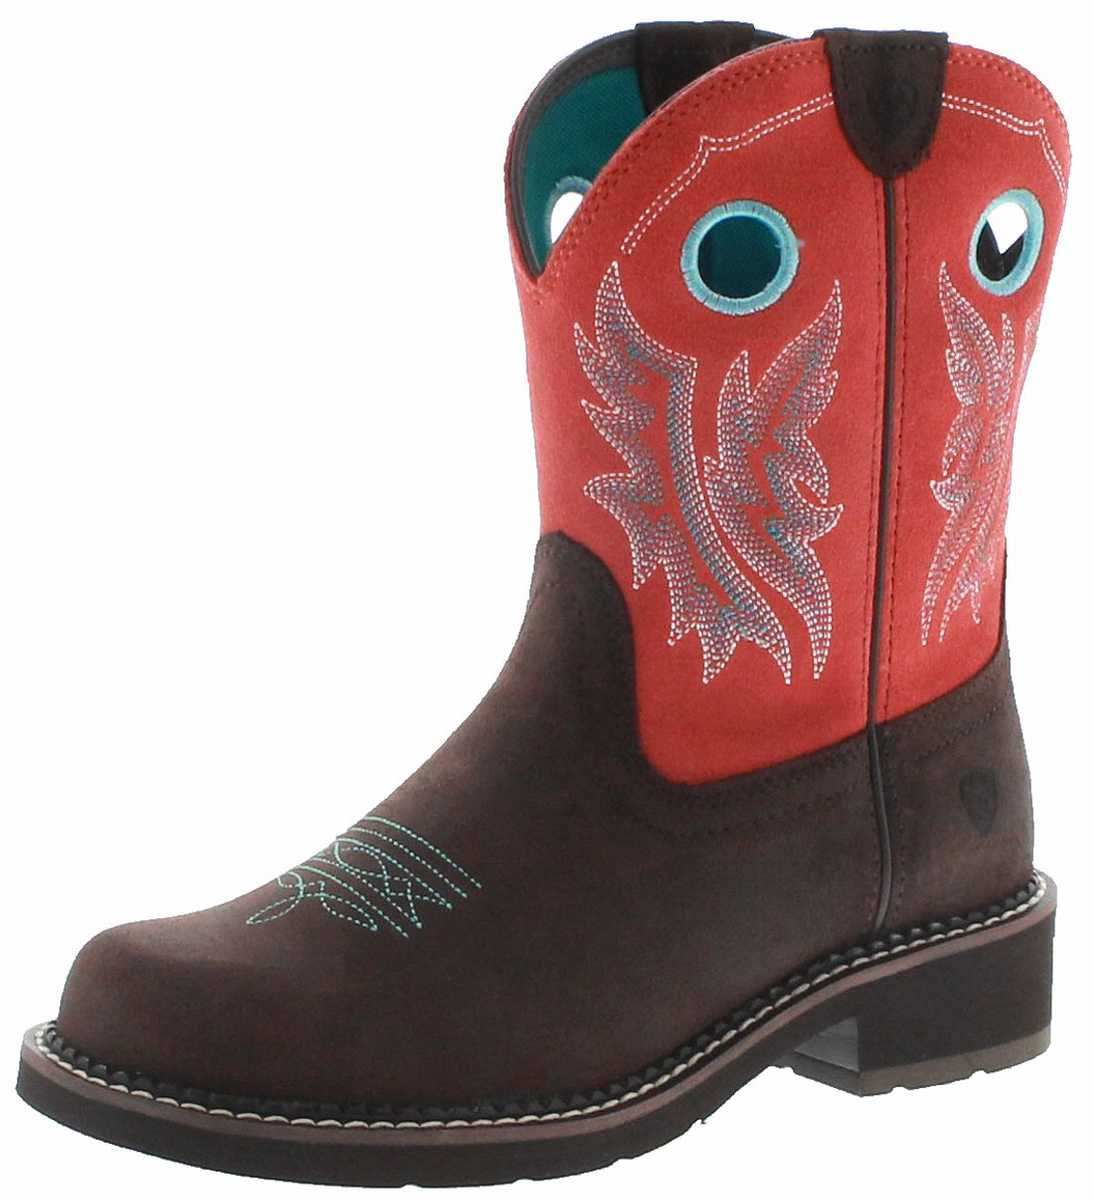 Ariat 23114 FATBABY HERITAGE COWGIRL Chocolate ladies western riding boots - brown